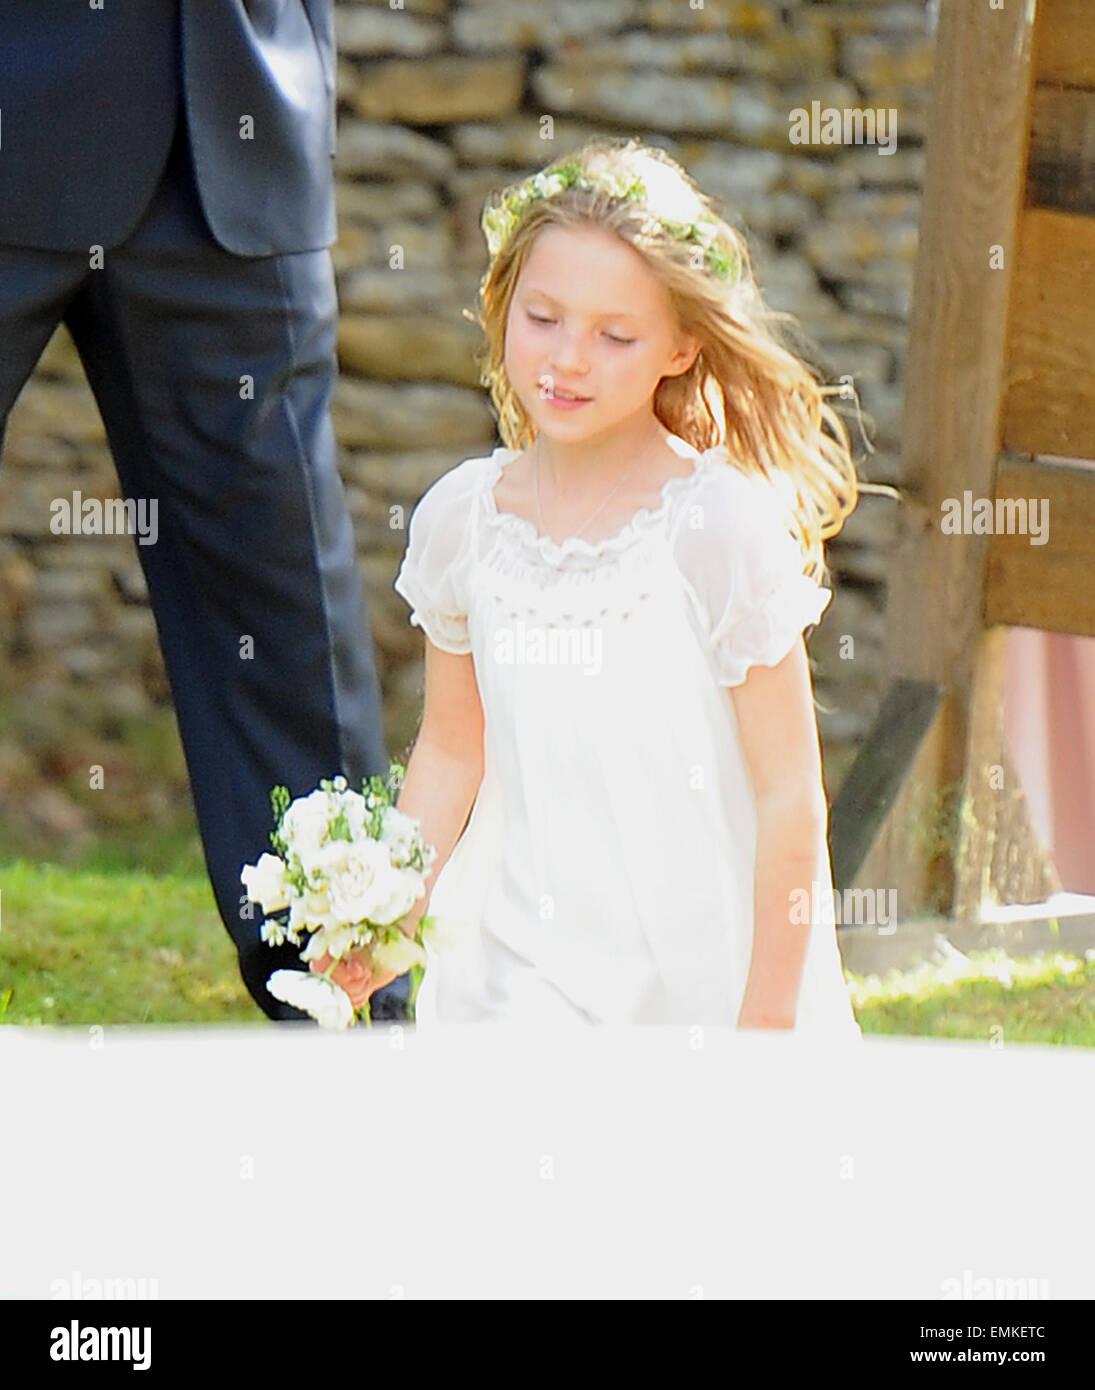 01.JULY.2011. SOUTHROP  LILA GRACE MOSS AT THE KATE MOSS AND JAMIE HINCE WEDDING CEREMONY HELD AT SOUTHROP VILLAGE - Stock Image